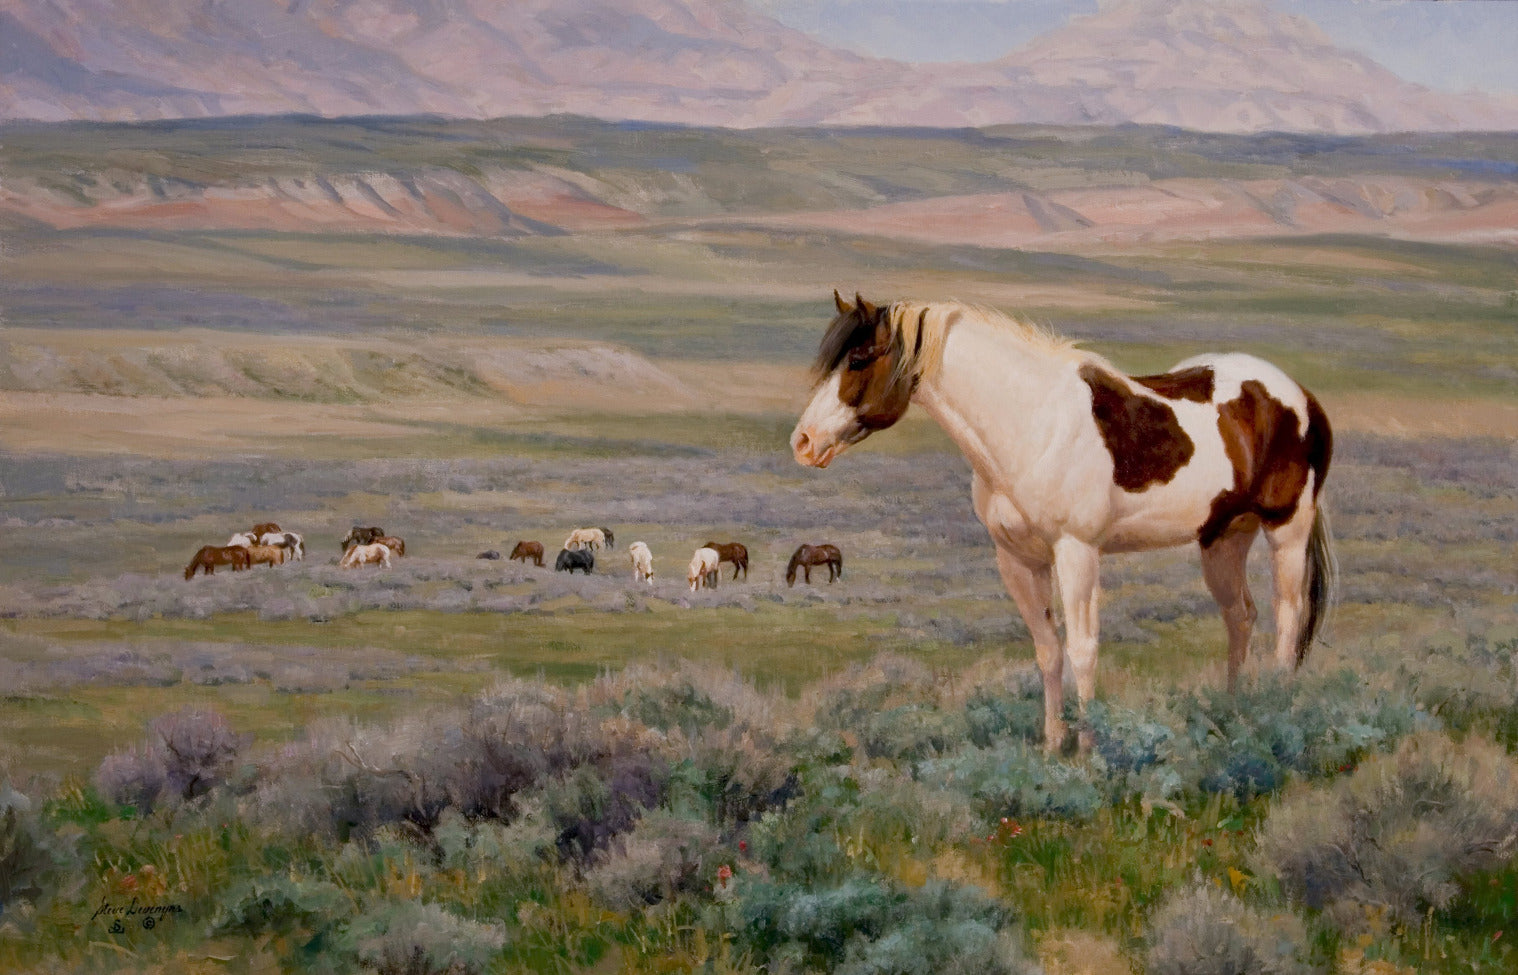 """In the Last Wild Place"", by Steve Devenyns, famous American Western Fine Artist Oil Painting. A painting depicting the beloved Wild Horses of the American West. Steve has been featured in the Buffalo Bill Art Show, Prix de West Art Show, Eiteljorg Museum, Quest for the West Art Show, and National Museum of Wildlife Art."